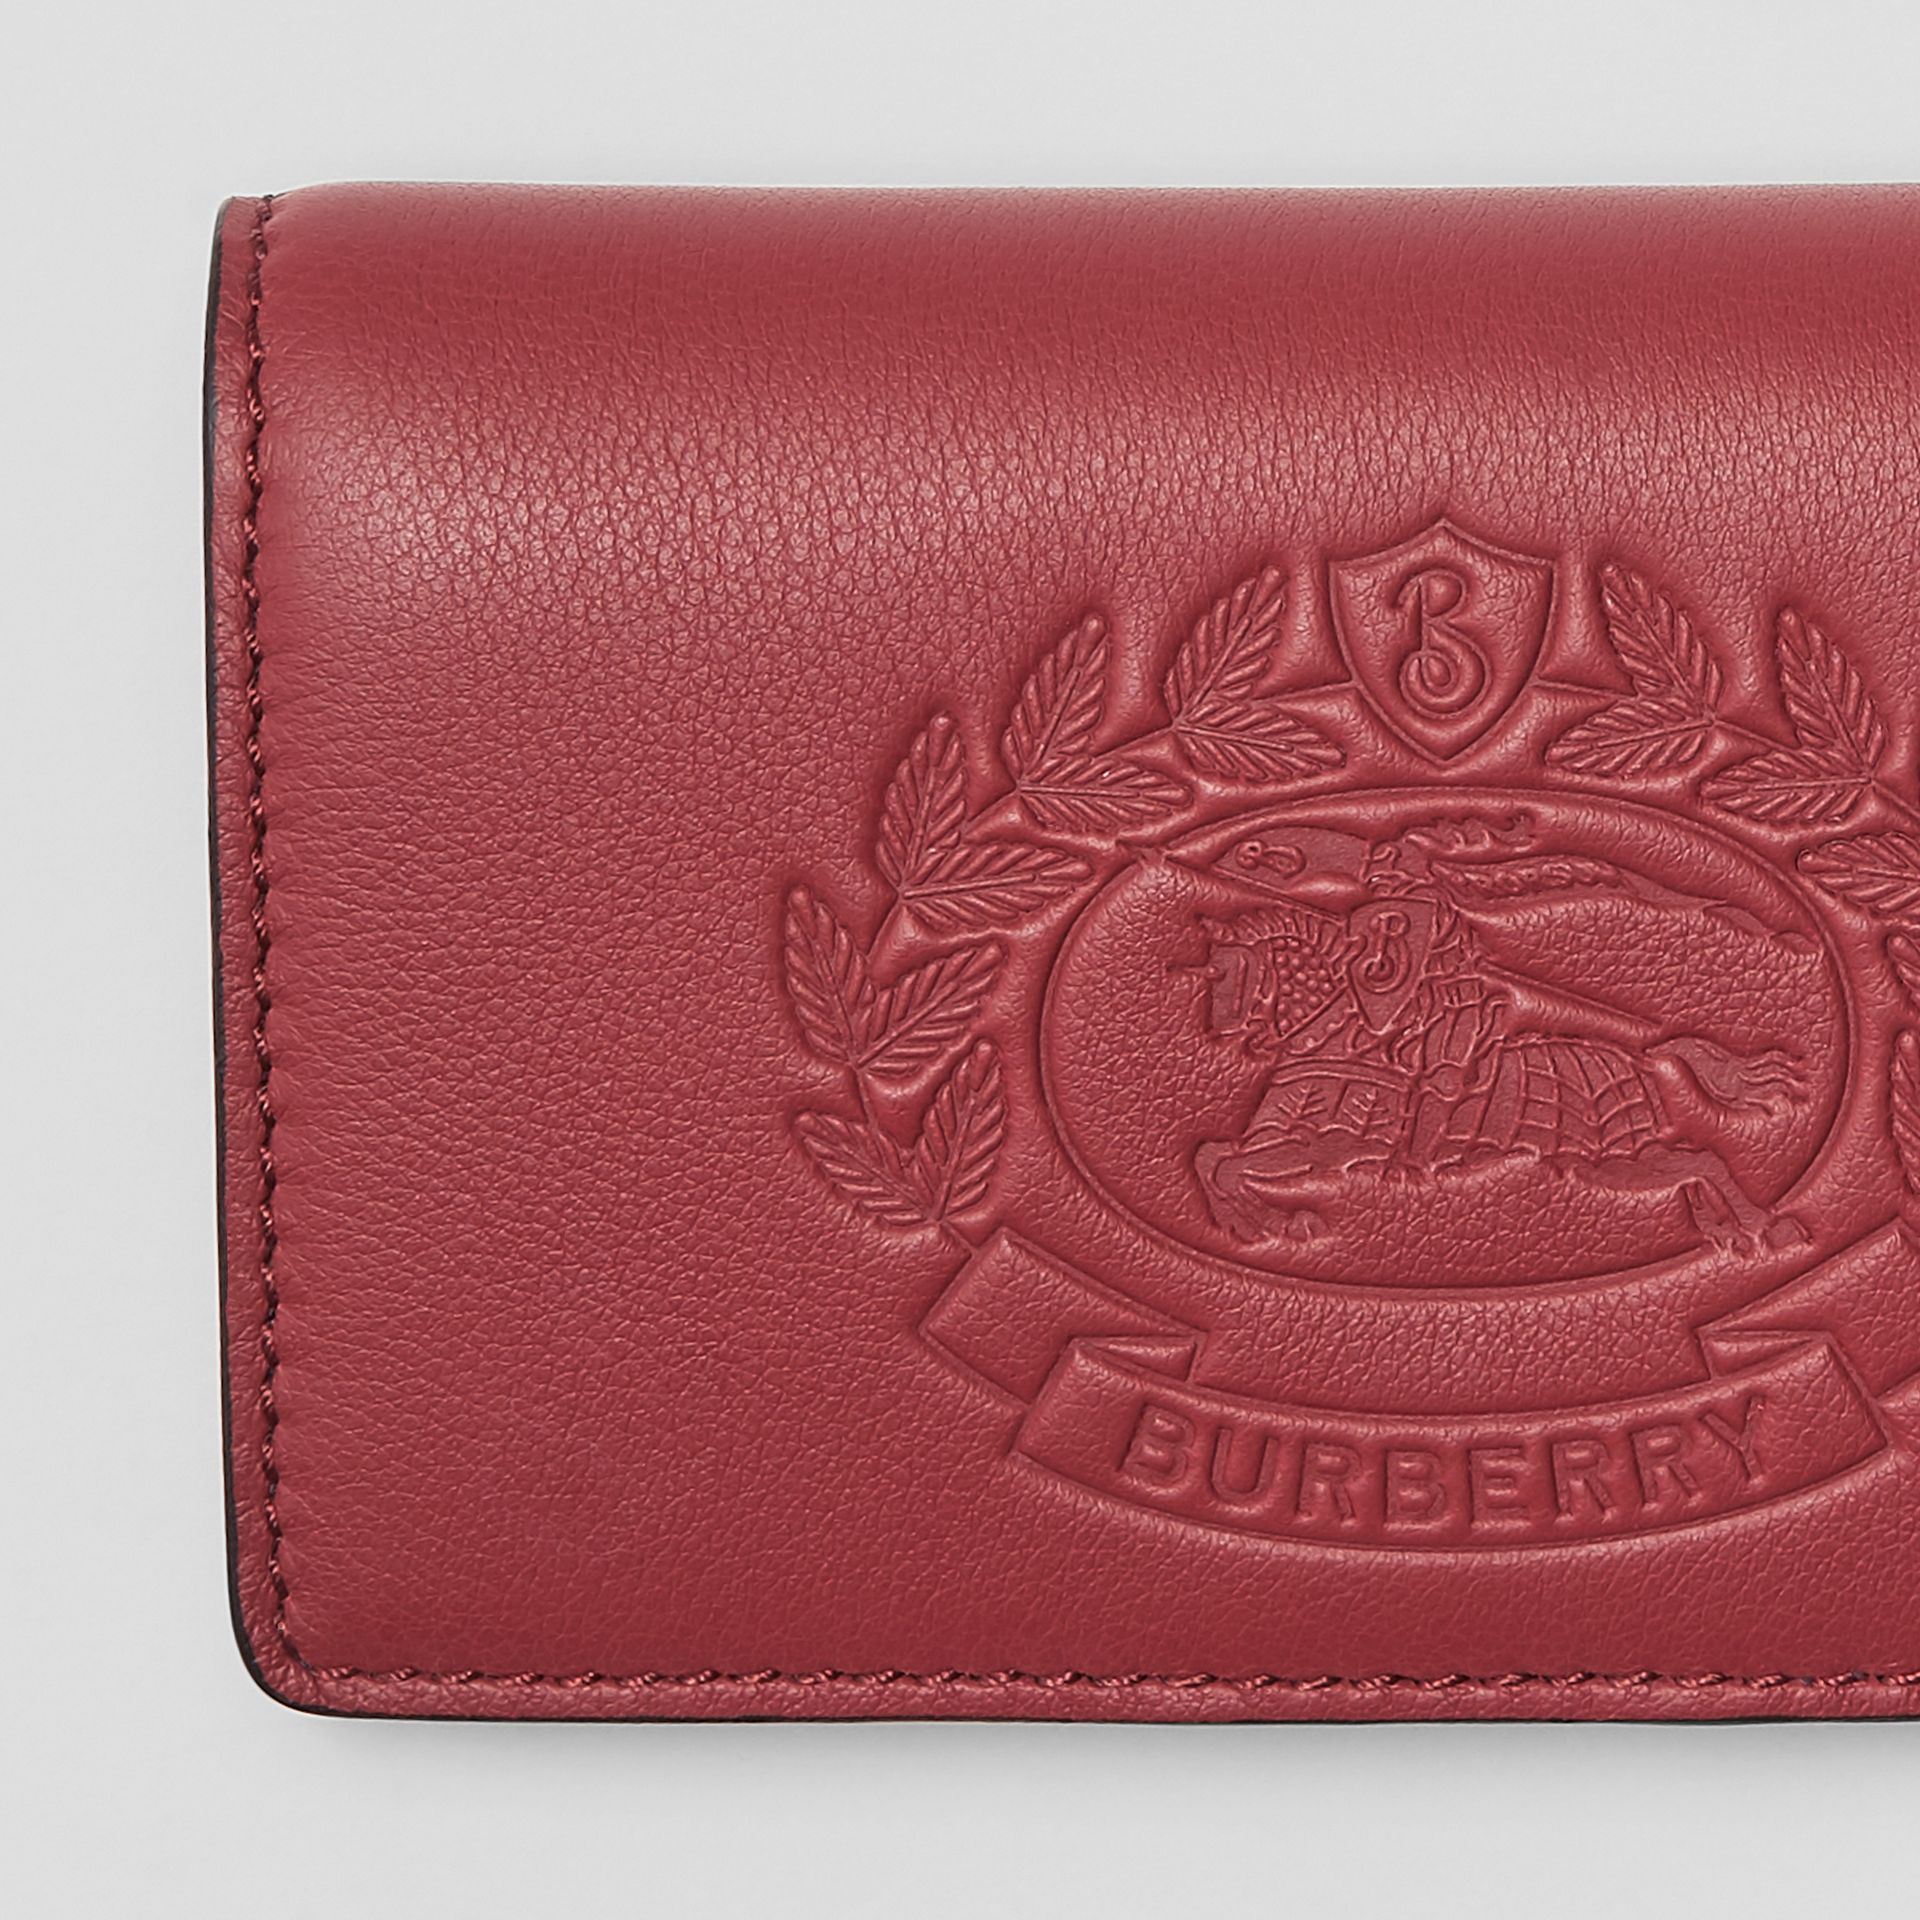 Small Embossed Crest Two-tone Leather Wallet in Crimson - Women | Burberry - gallery image 1